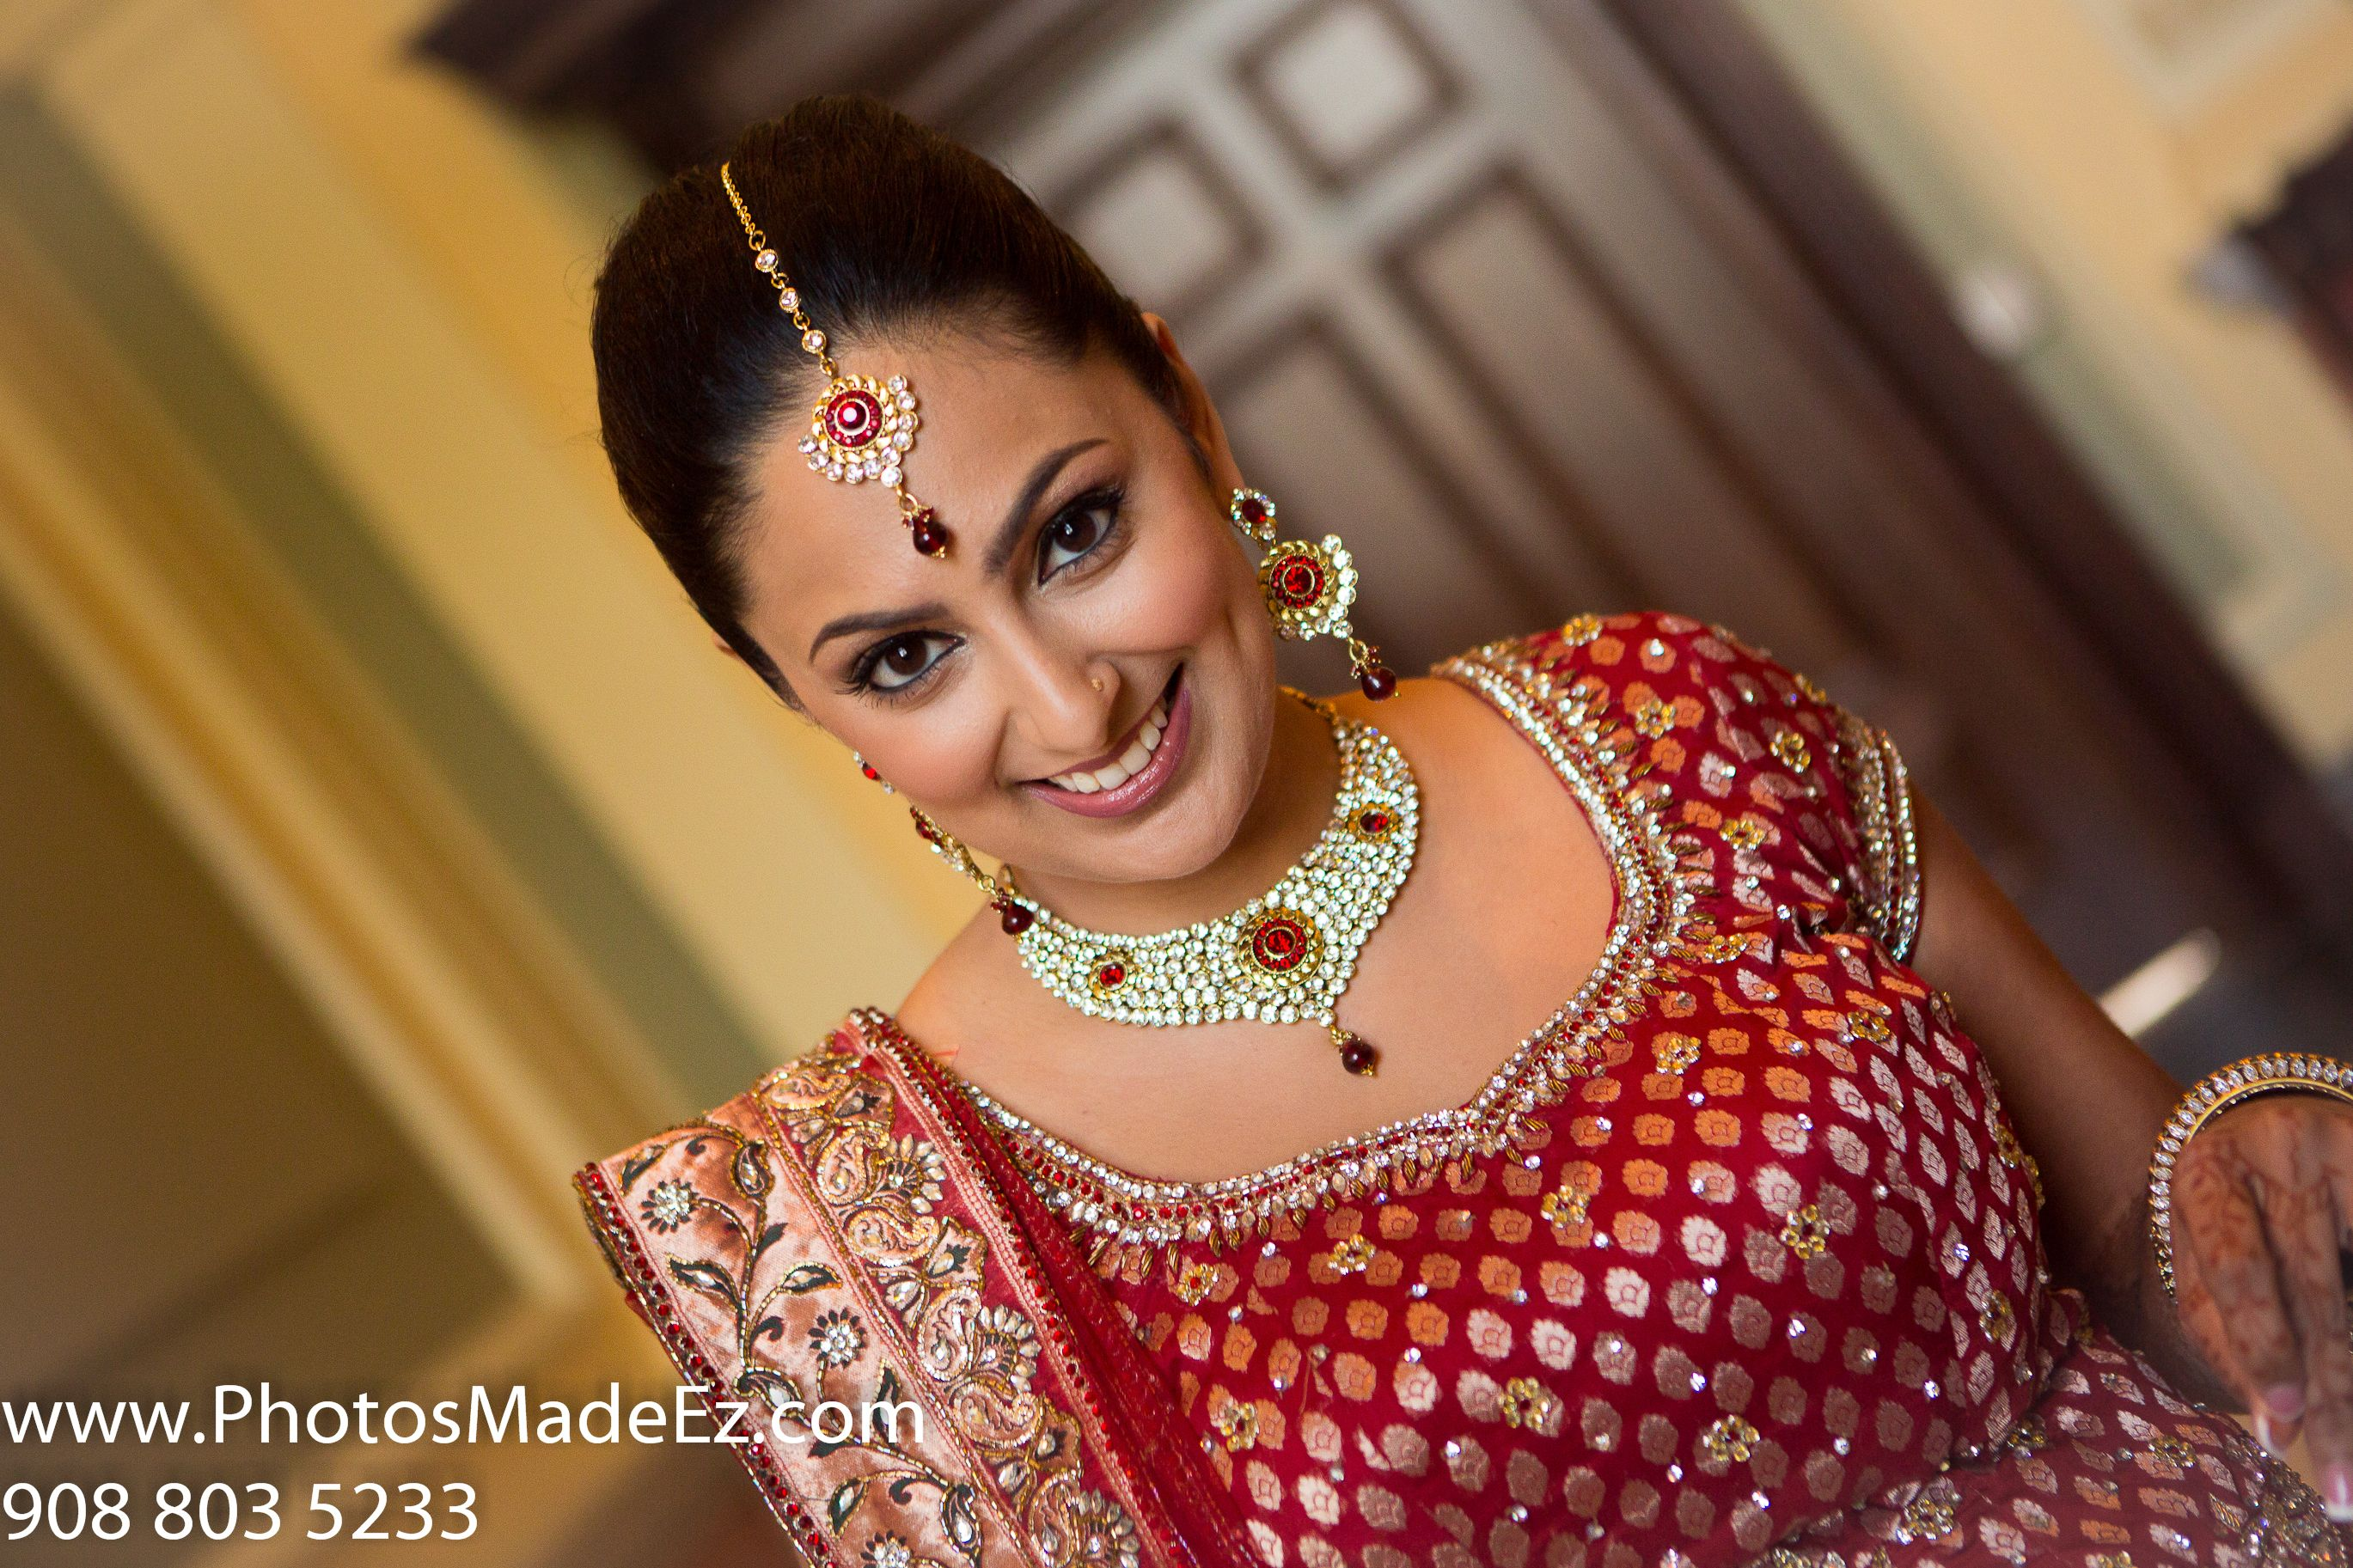 Shefali and Vivek's Gujrati Wedding in Please Touch Museum